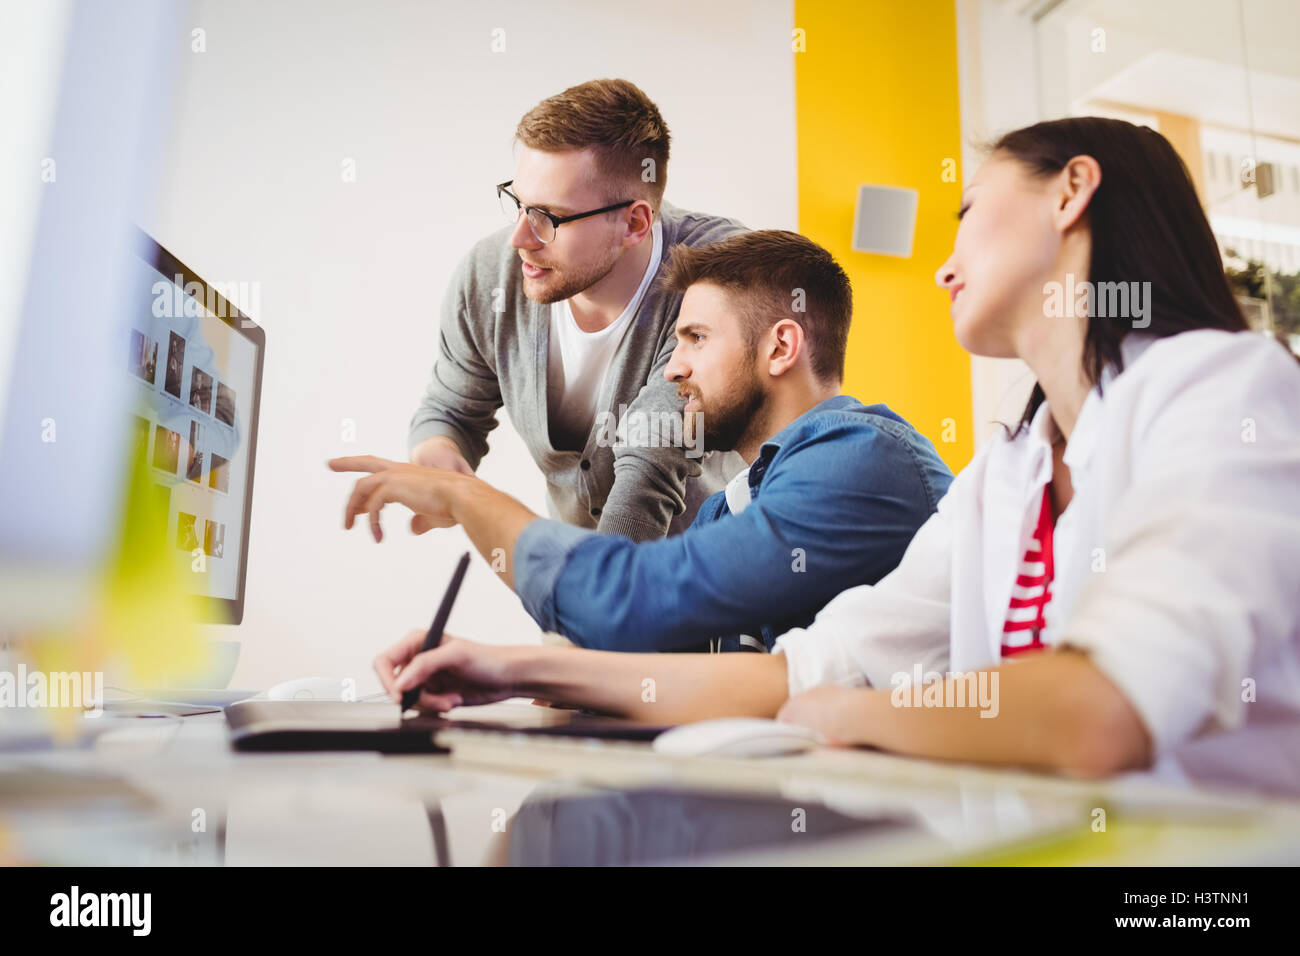 Colleagues discussing photographs at creative office - Stock Image